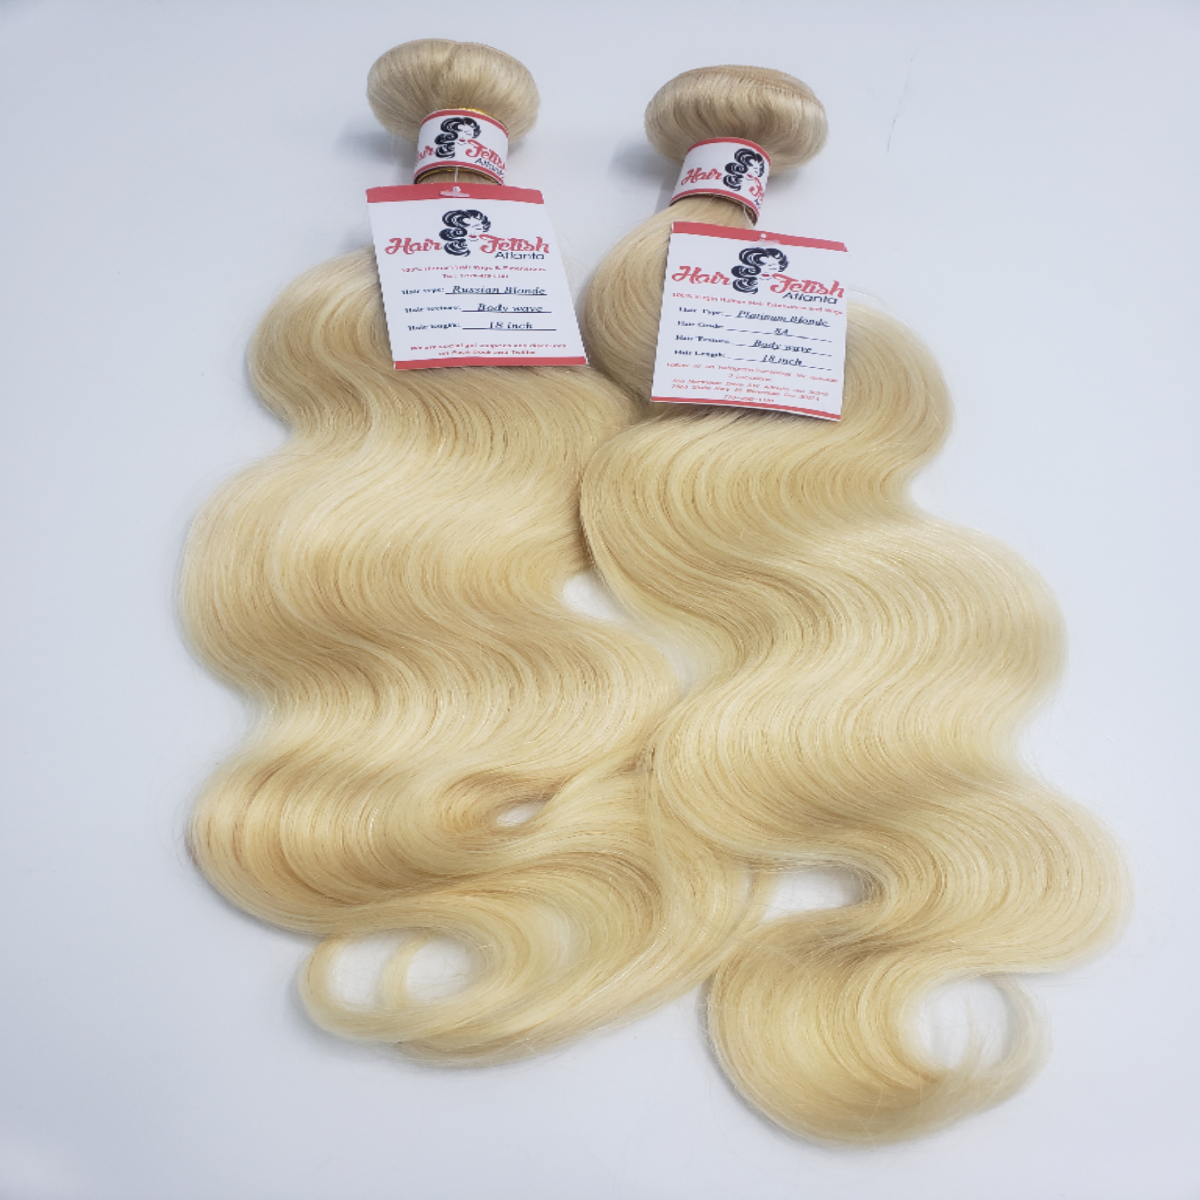 Russian Blonde Hair Extension 12 inch to 50 inch